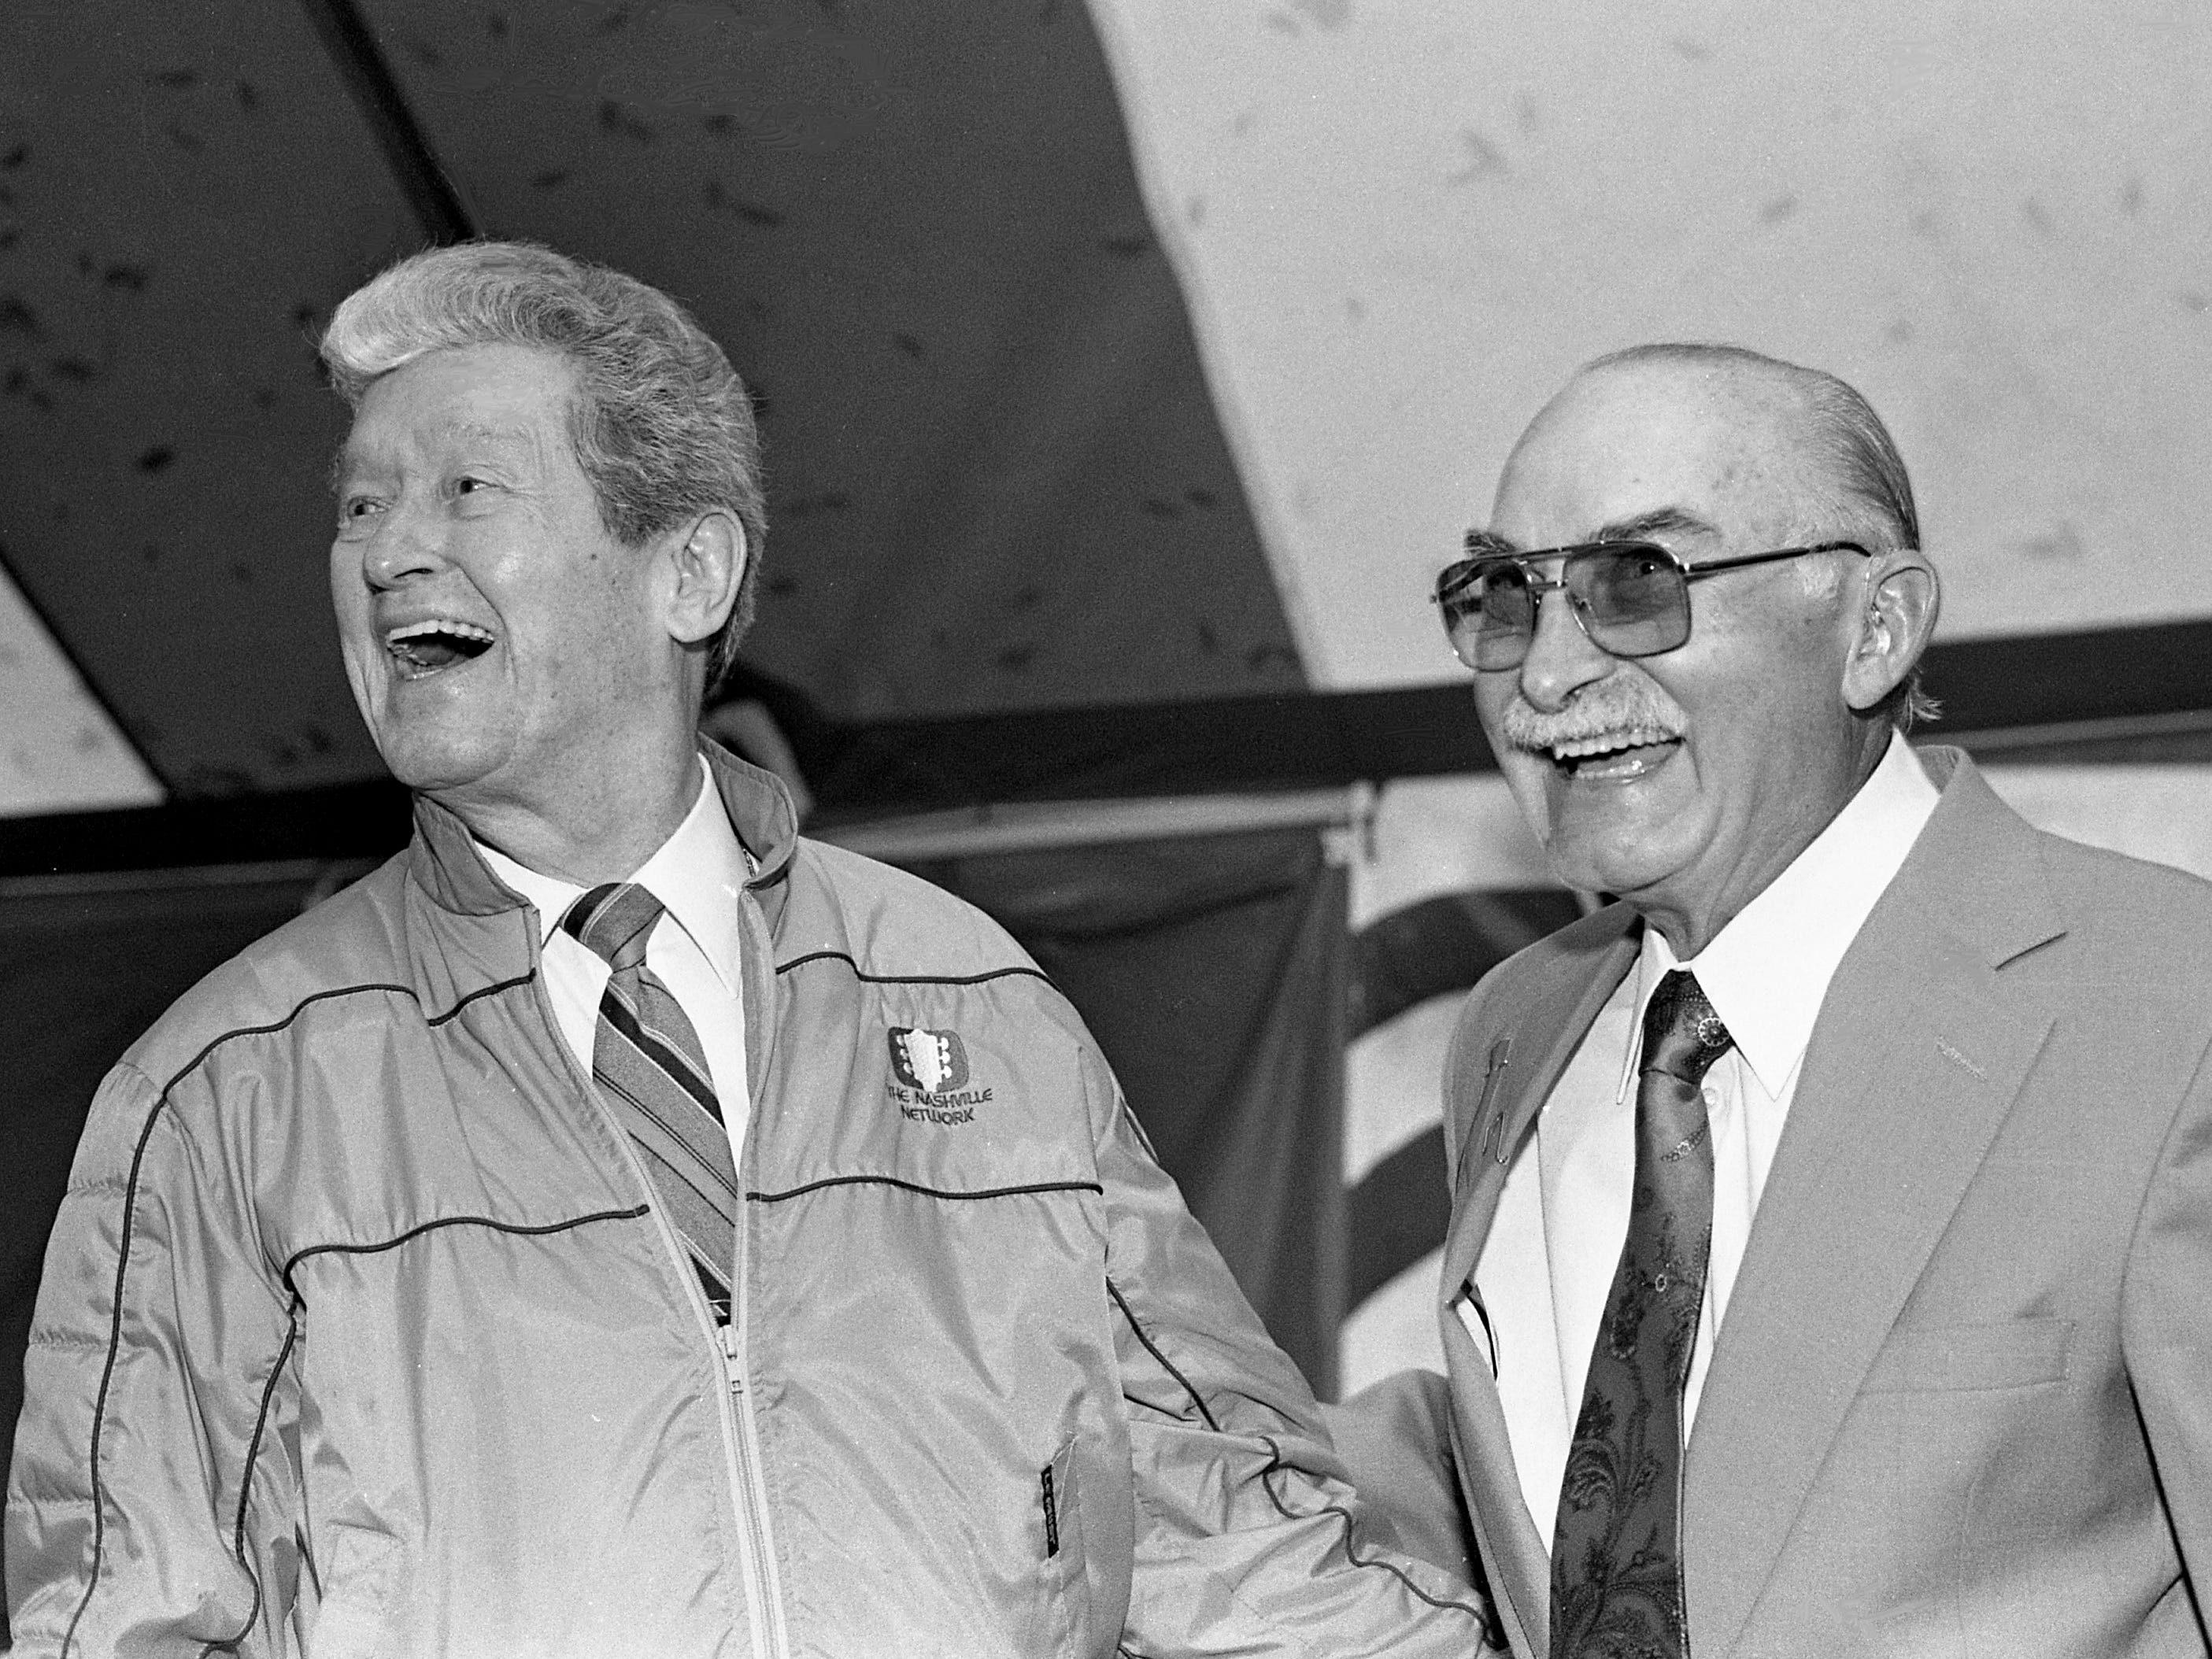 "Roy Acuff, left, and Grandpa Jones laugh during the tribute marking Jones' 60 years in country music at a Hendersonville farm Oct. 23, 1988. Acuff was one of the roasters who regaled the crowd with ""Grandpa stories."""